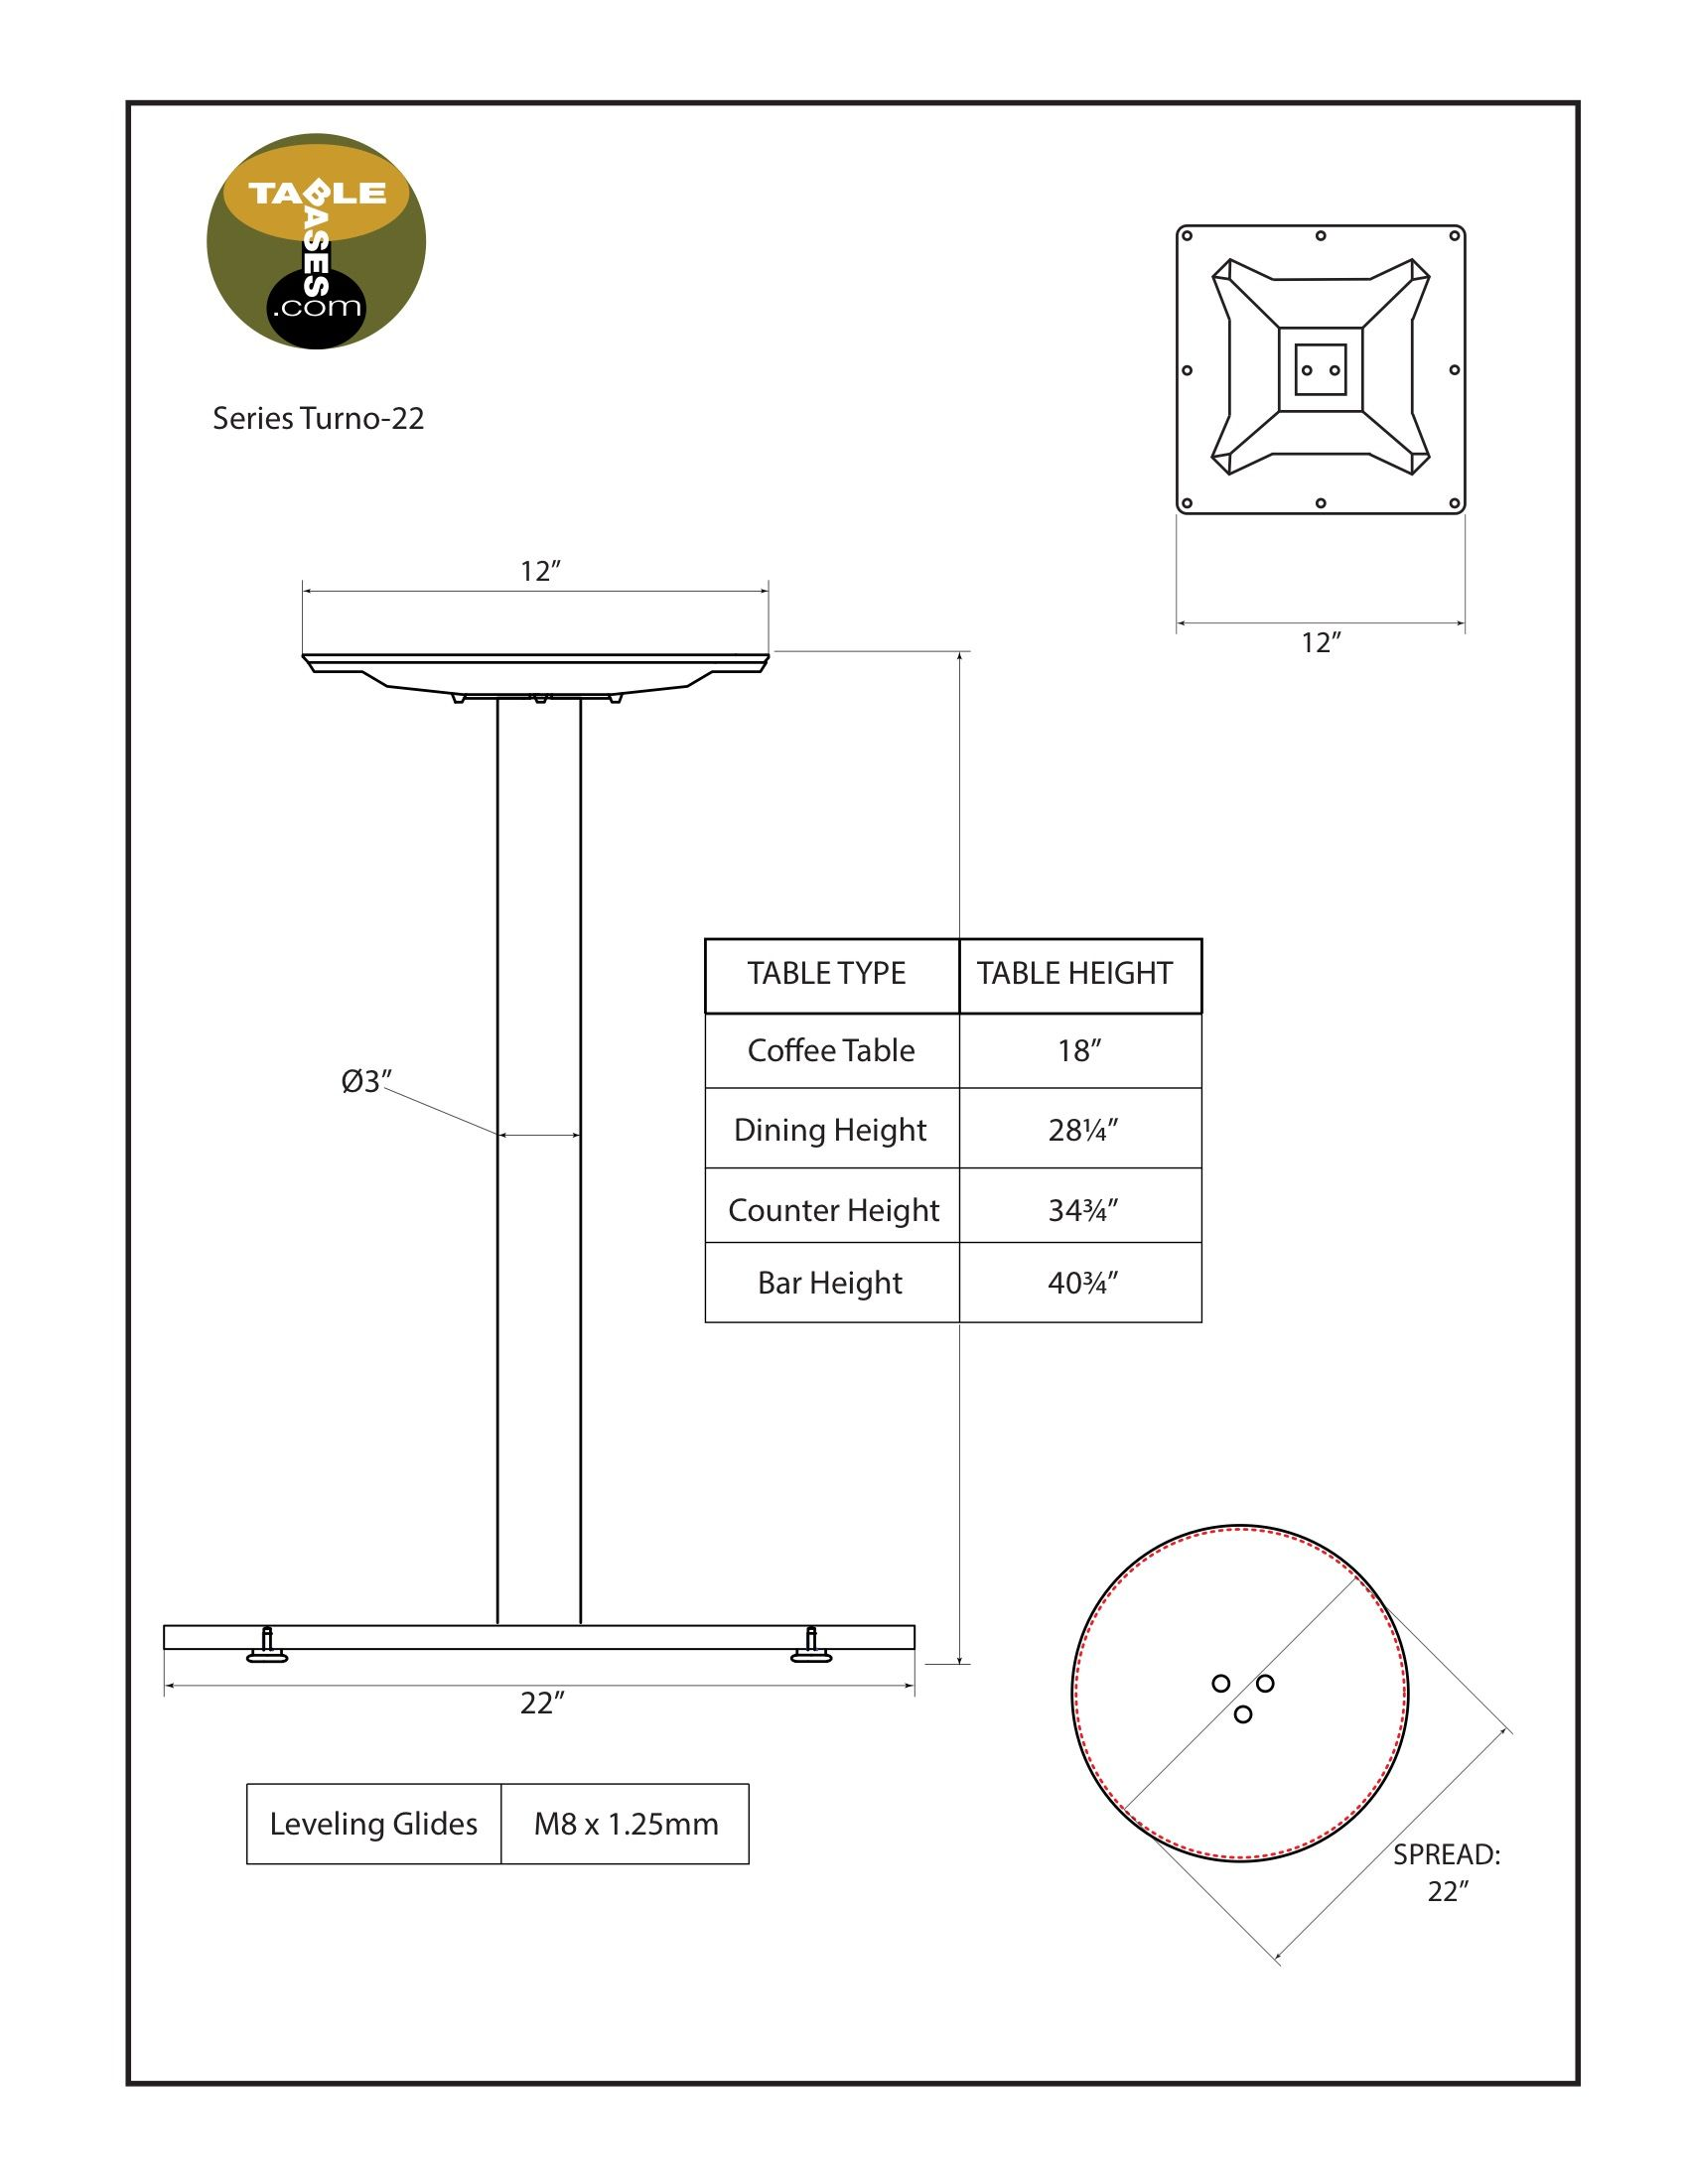 Turno-22 Table Base Specifications